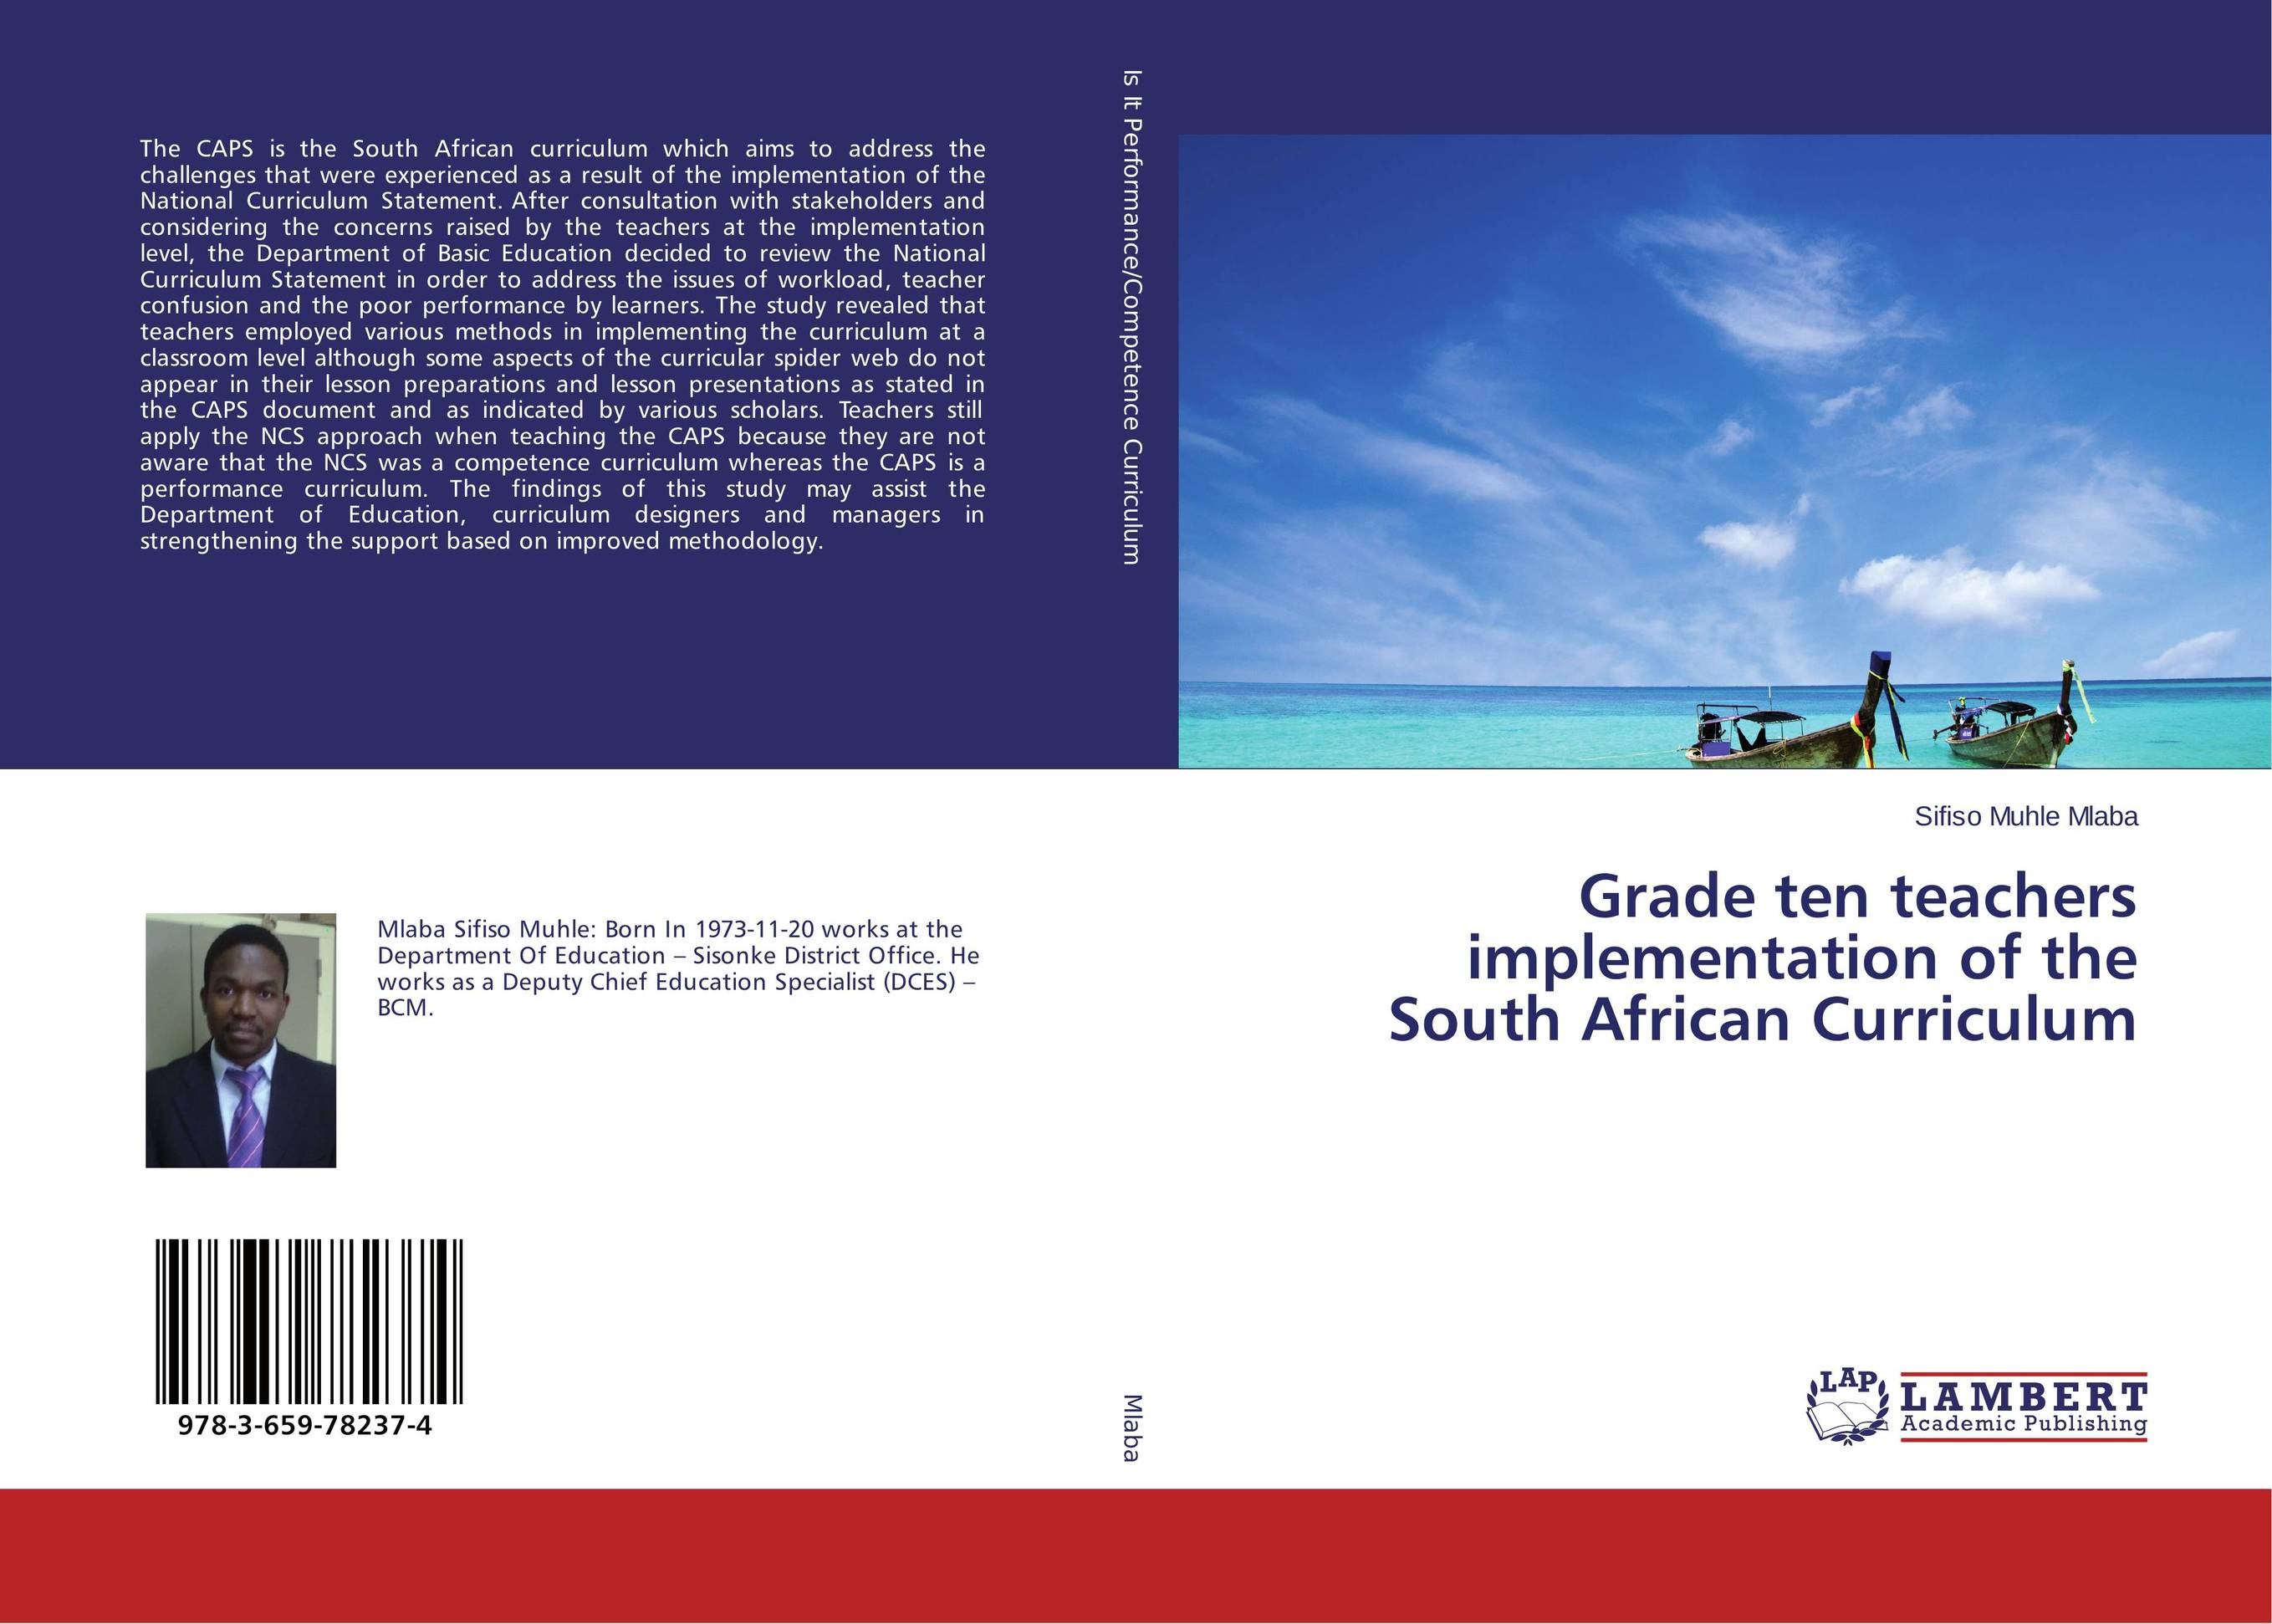 Grade ten teachers implementation of the South African Curriculum alternative basic education curriculum implementation in ethiopia